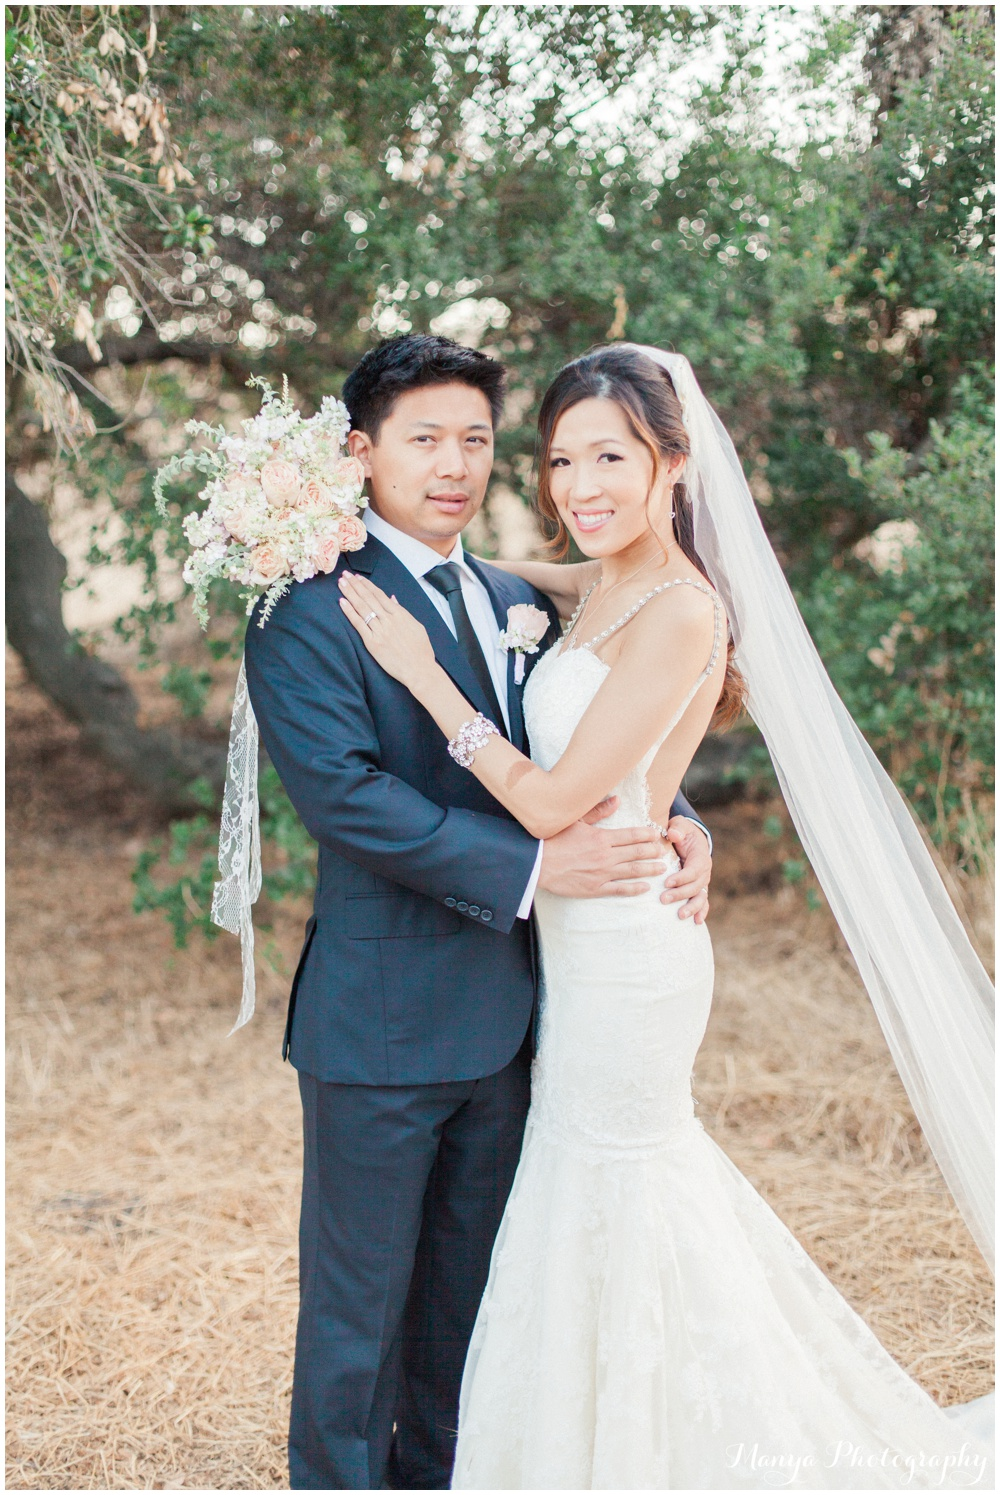 MandM_Wedding_Orange_County_Wedding_Photographer_Manya_Photography_Carbon_Thomas_F_Riley_Wilderness_Park__0051